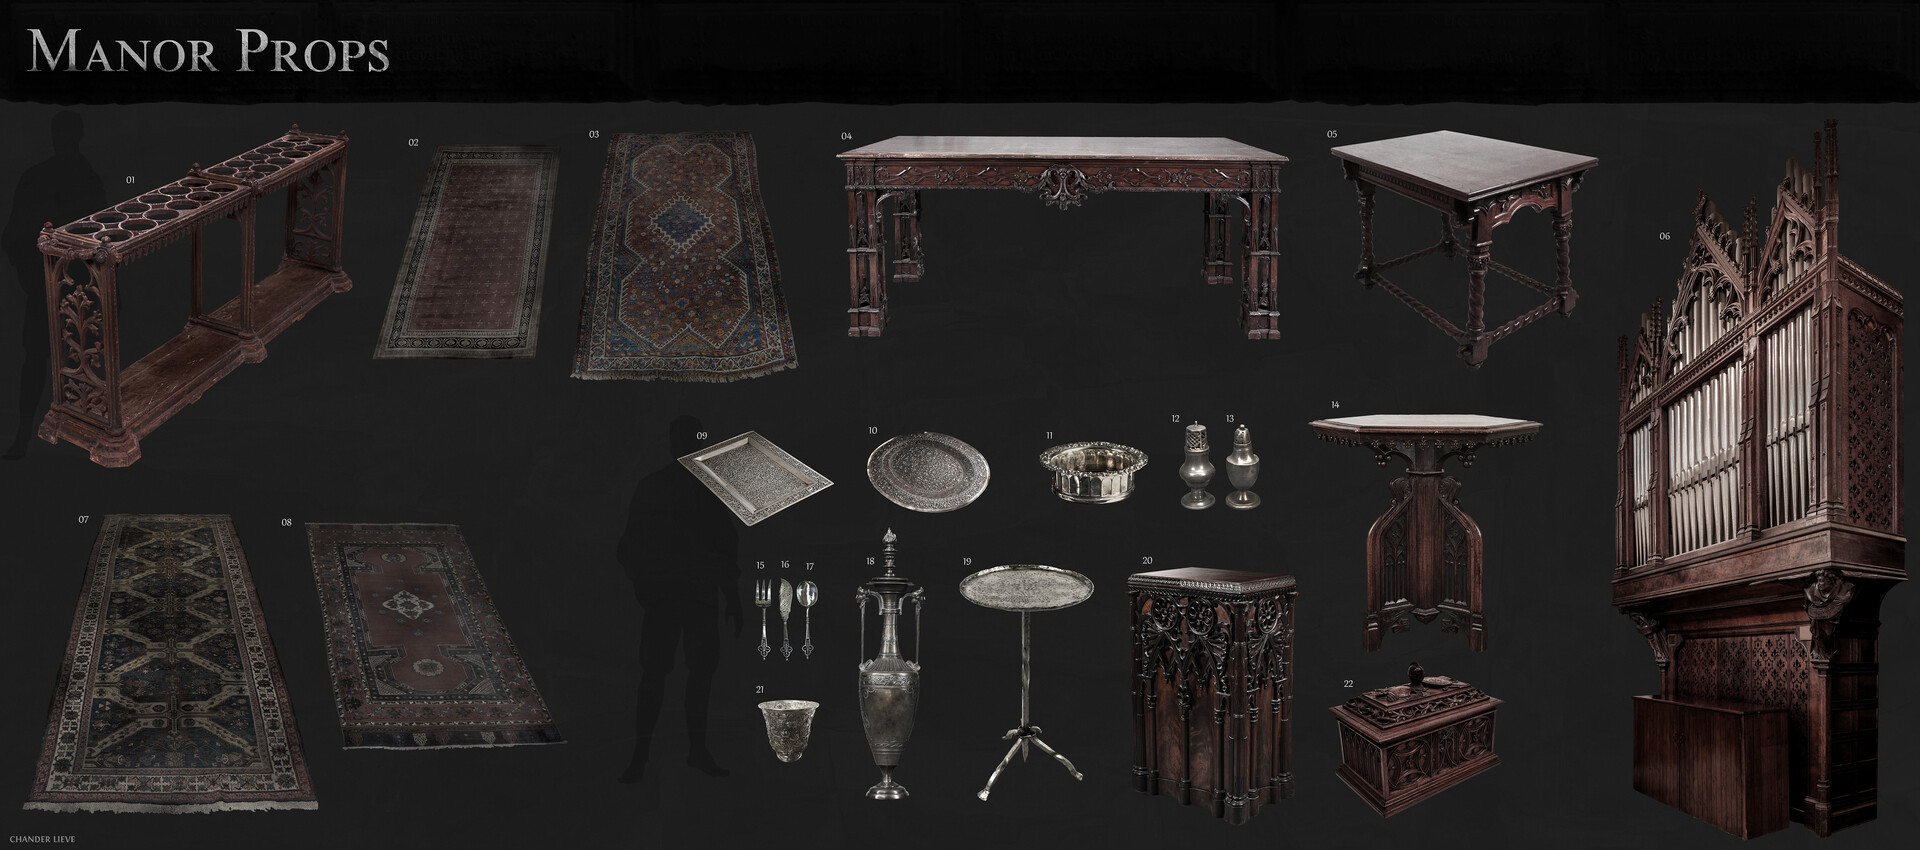 Chander lieve manor props 3